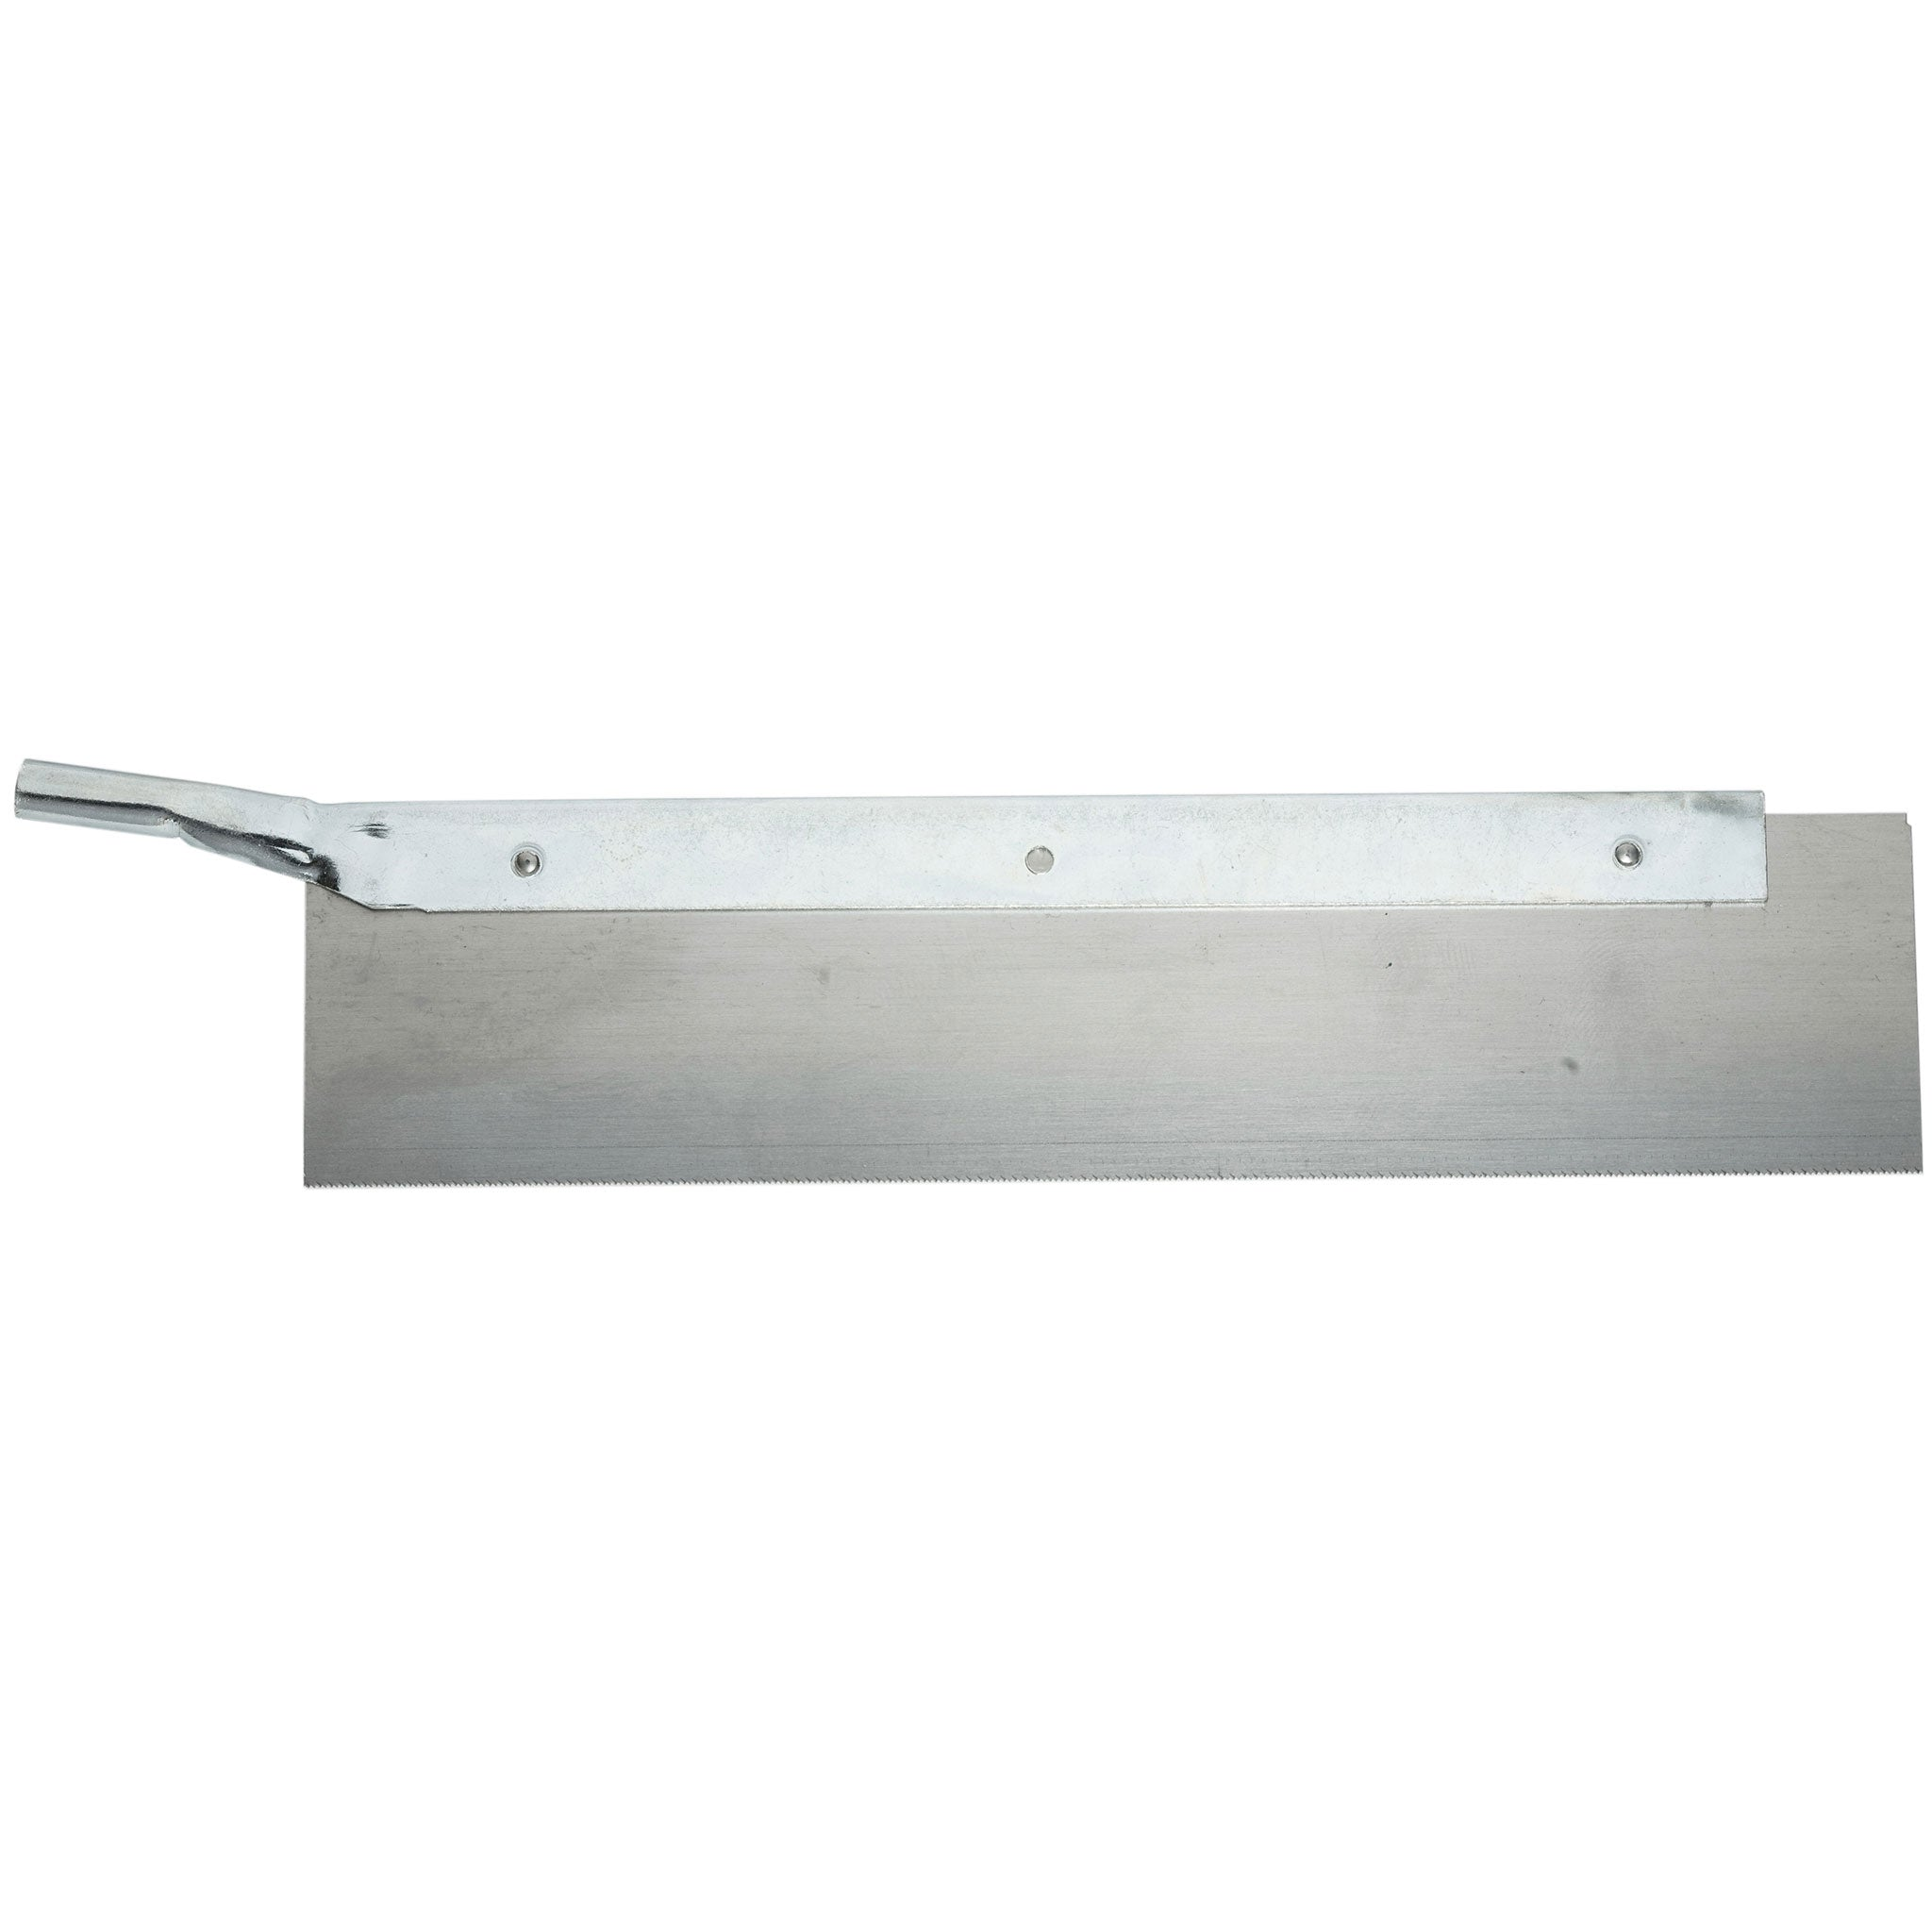 Razor Pull Saw Blade 46 Teeth per Inch